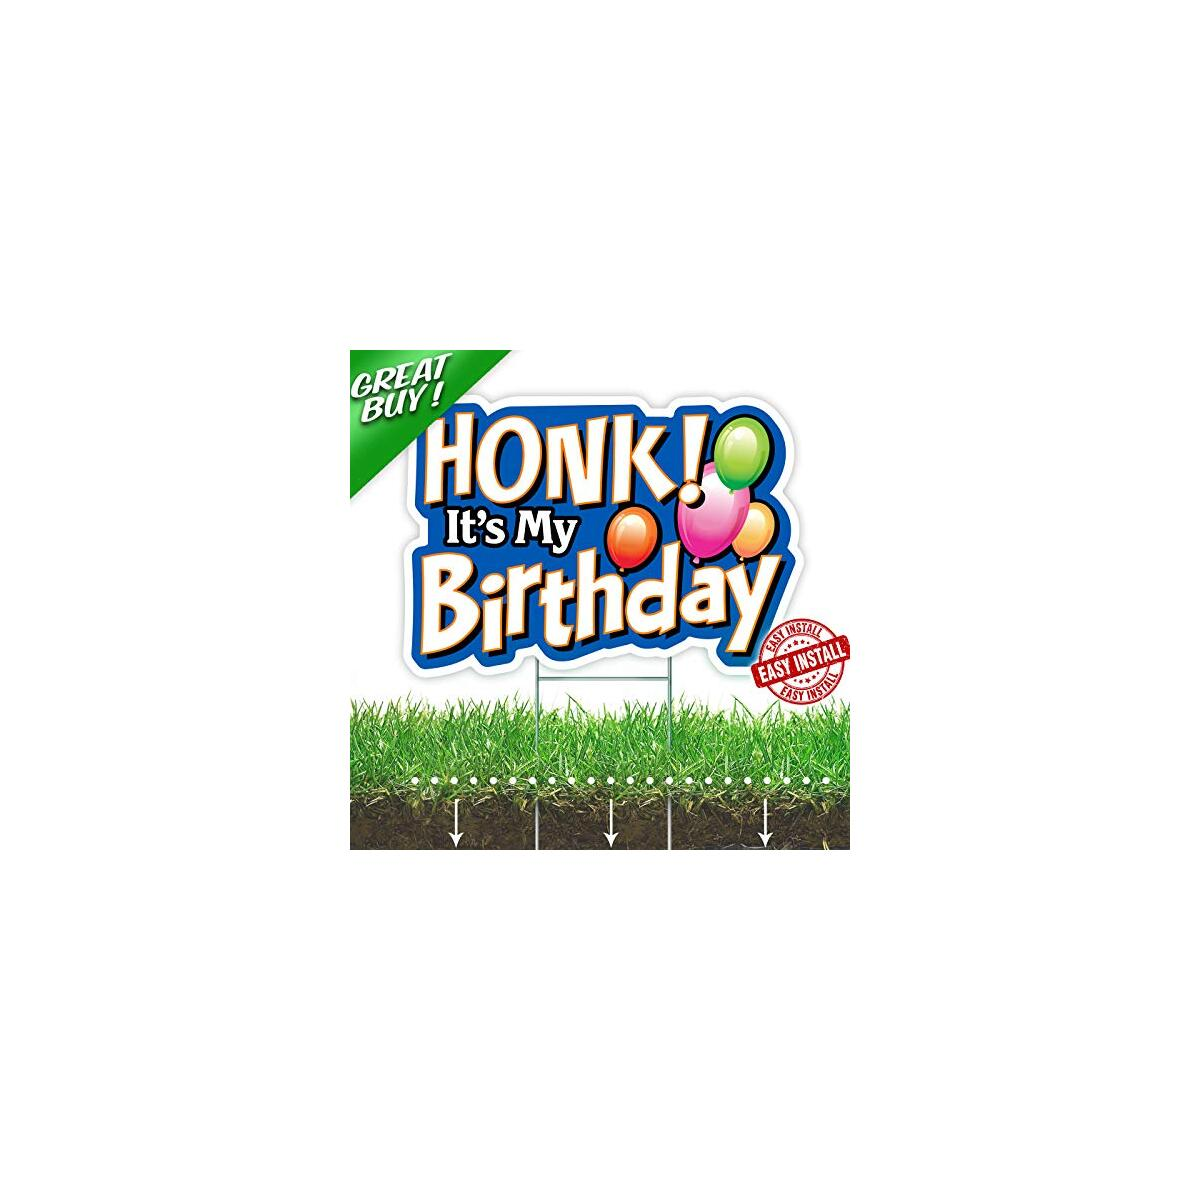 HONK! It's My Birthday Party Sign - Yard Decoration with Metal Stakes - Weatherproof Corrugated Plastic Board -  Lawn & Backyard Decor for Outdoor Celebration